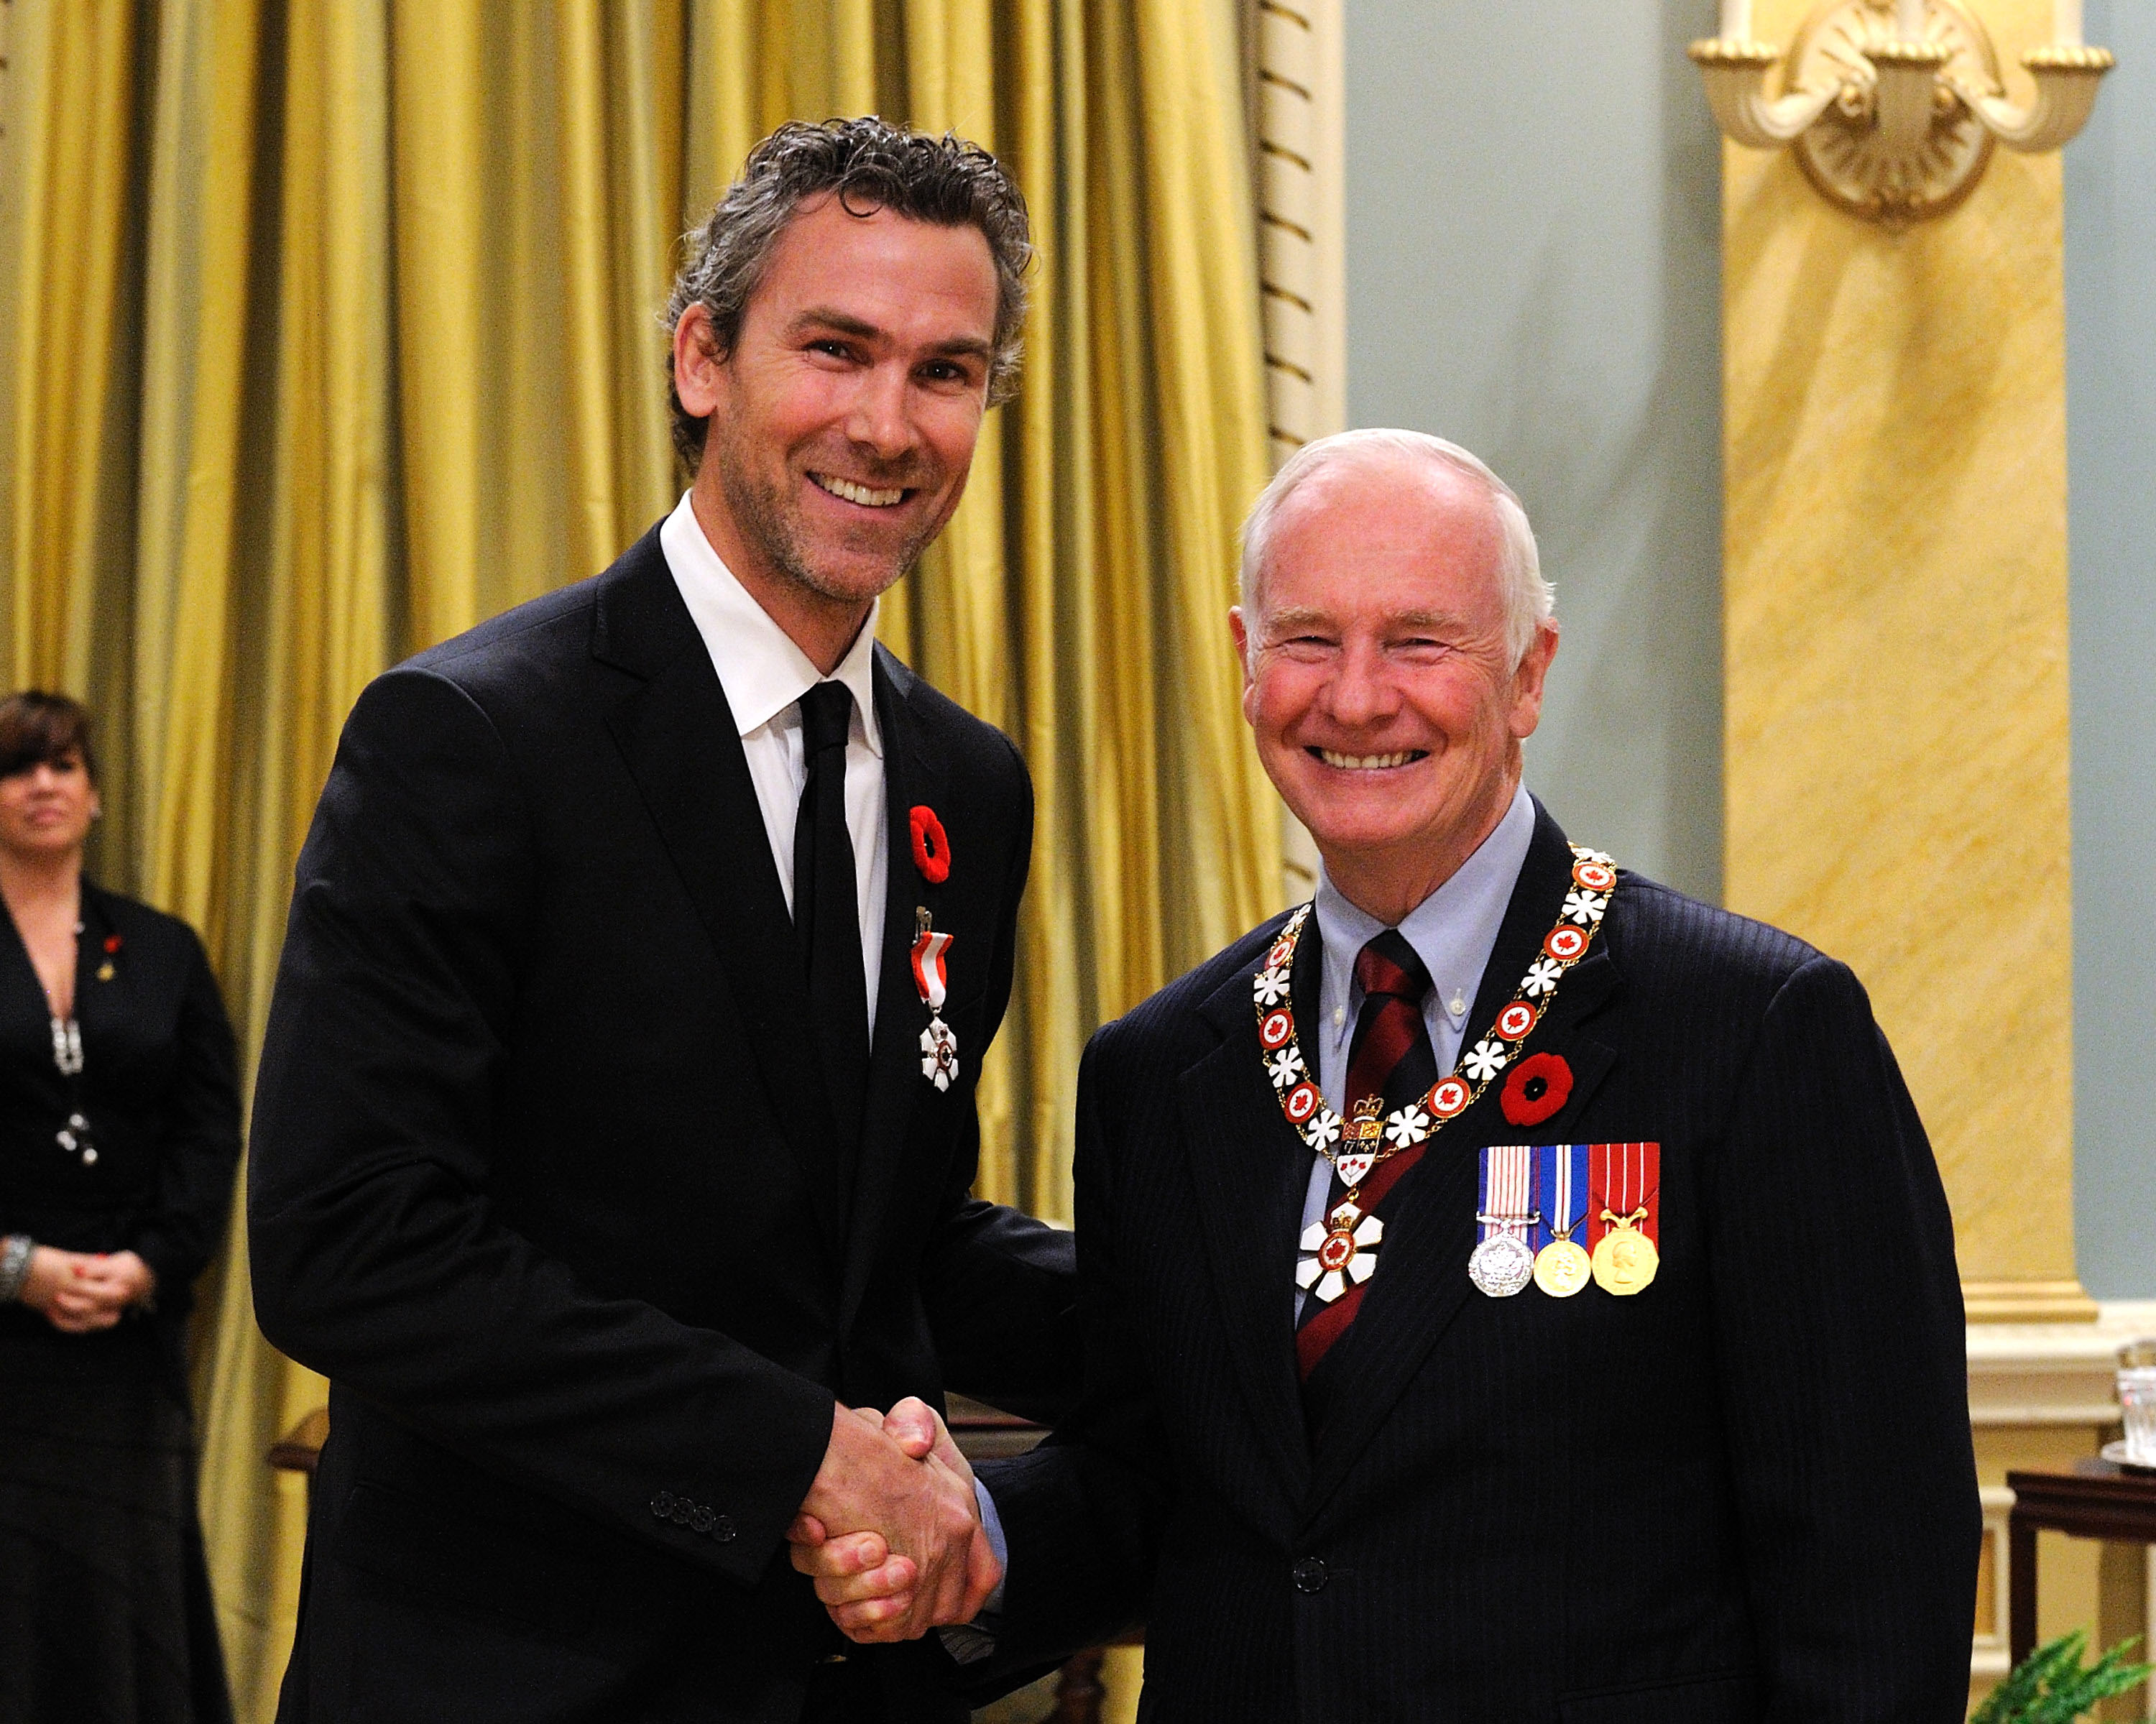 Throughout his career in the National Hockey League, Trevor Linden (Vancouver, British Columbia) established a reputation for community engagement and sportsmanship. A gifted forward, he played for nearly two decades, notably with the Vancouver Canucks and the Montreal Canadiens, and represented Canada at several international tournaments. Recognized for his leadership and humanitarian contributions, he also created the Trevor Linden Foundation. This organization supports, among other initiatives, pediatric cancer care, research and preventative campaigns, and has been particularly dedicated to helping underprivileged and terminally ill children.